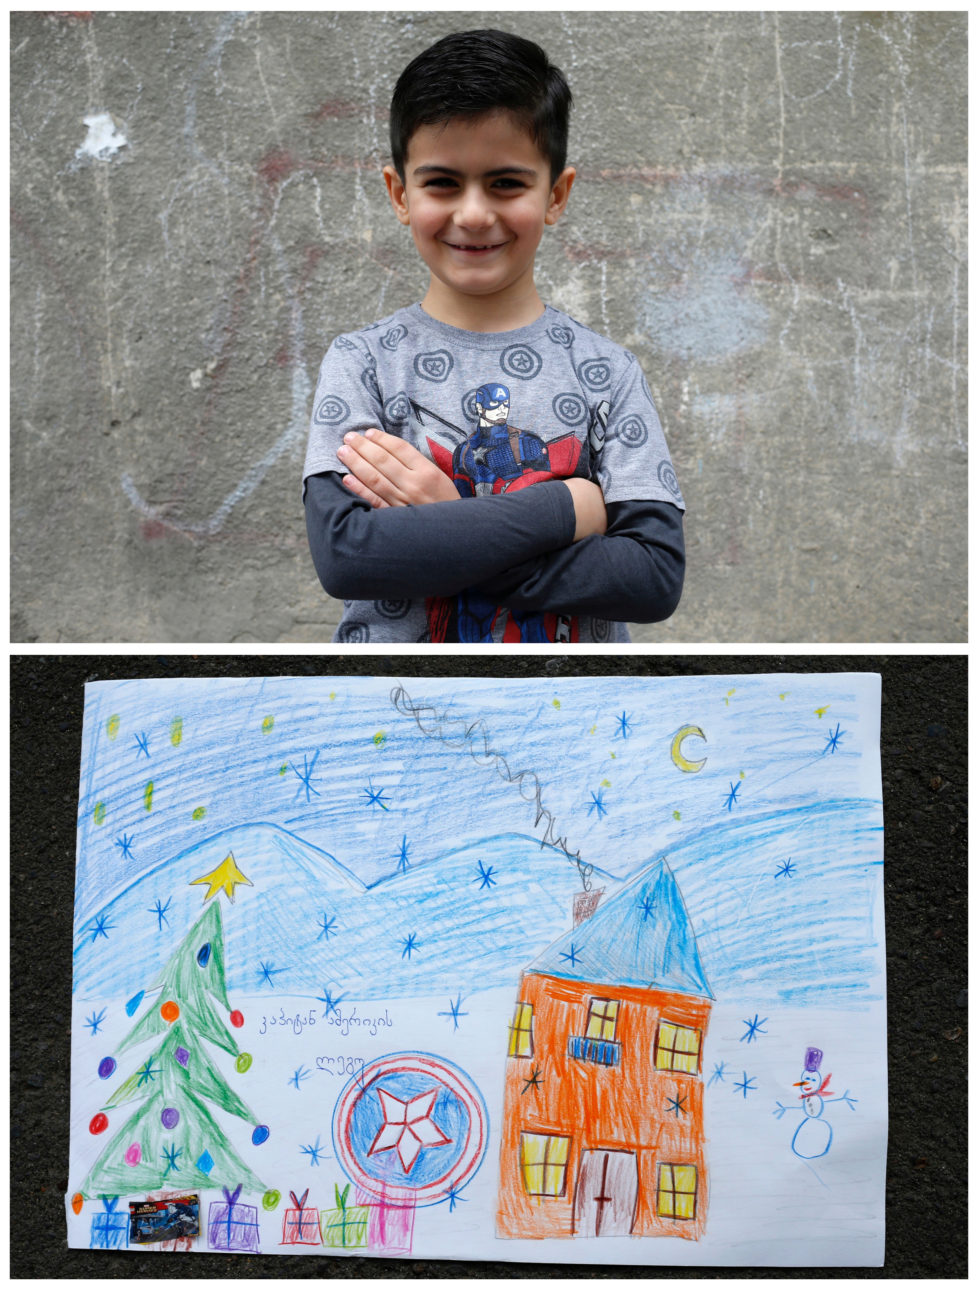 "A combination picture shows Sandro, 6, posing for a photograph (top) and his drawing of what he wants to get from Santa, in Tbilisi, Georgia, November 19, 2016. Sandro wants to get ""Captain America"" Lego set. He believes Santa can see his drawing and guess what he wants. He is waiting for his gift to be found under the Christmas tree. Reuters photographers around the world asked children to draw what they wanted to receive from Santa for Christmas. REUTERS/David Mdzinarishvili SEARCH ""CHRISTMAS WISHES"" FOR THIS STORY. SEARCH ""WIDER IMAGE"" FOR ALL STORIES. - RTSV37X"